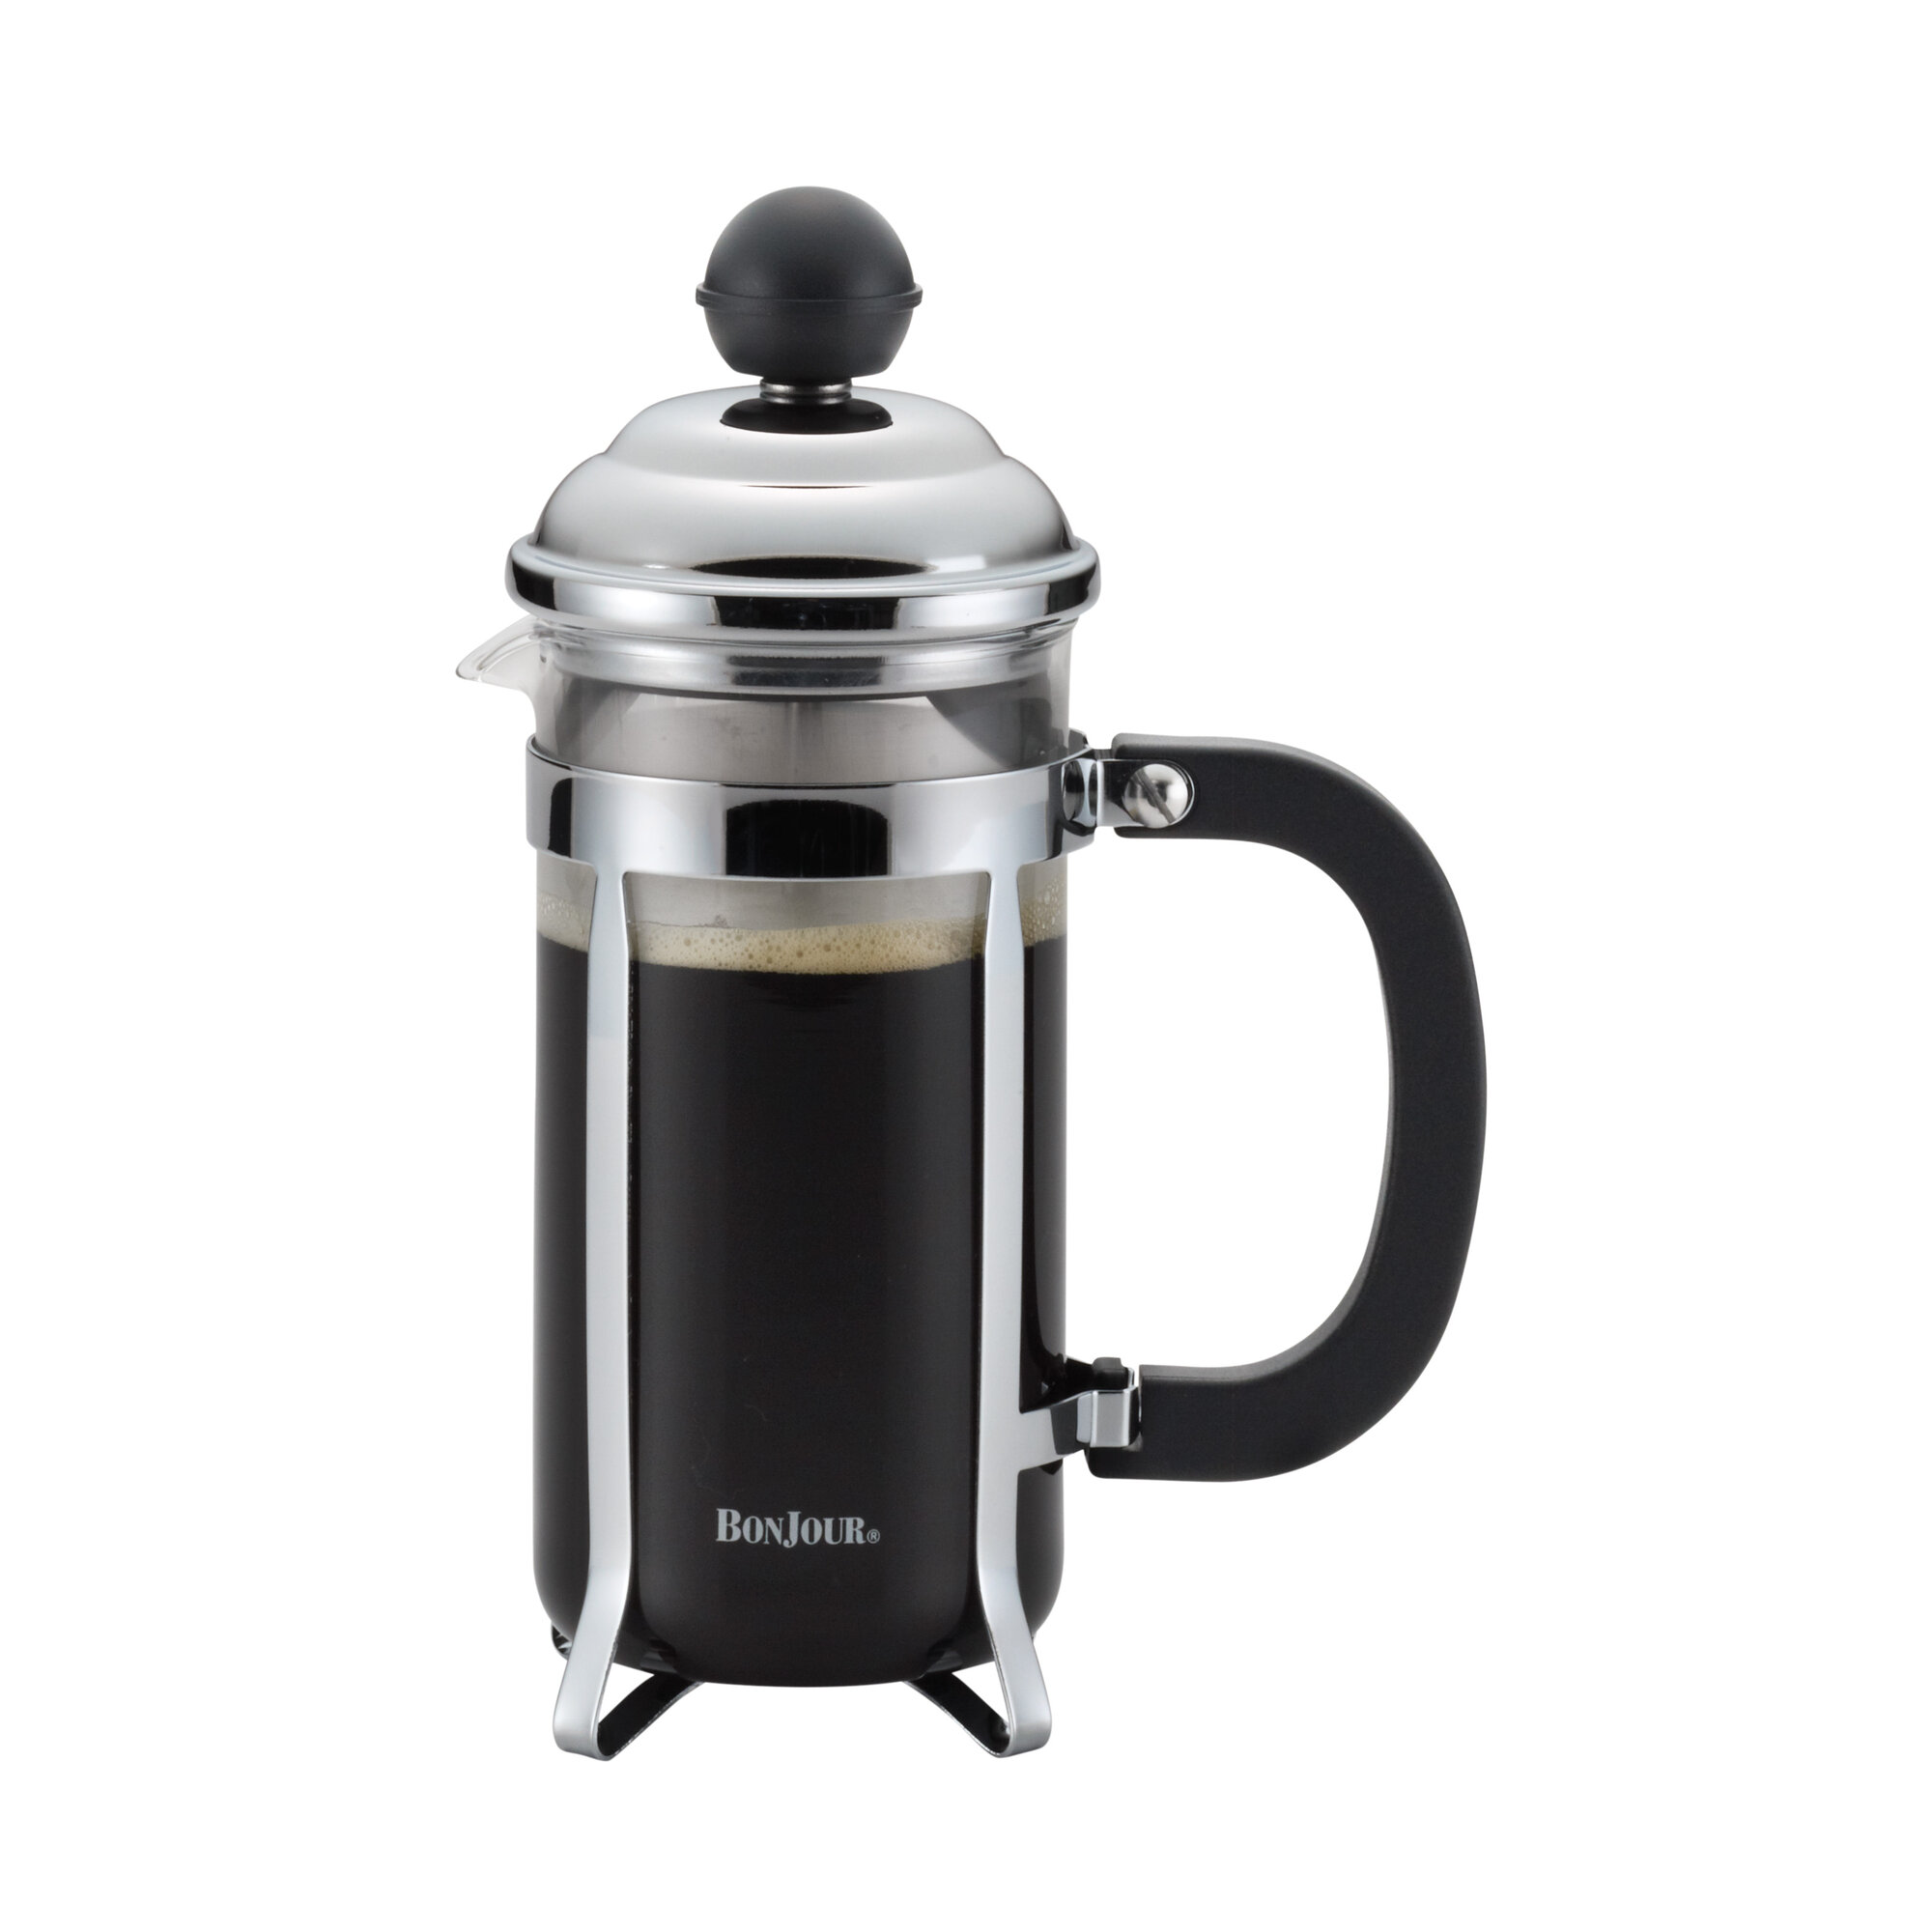 French Press Coffee Maker Cholesterol : Bonjour Bijoux French Press Coffee Maker eBay